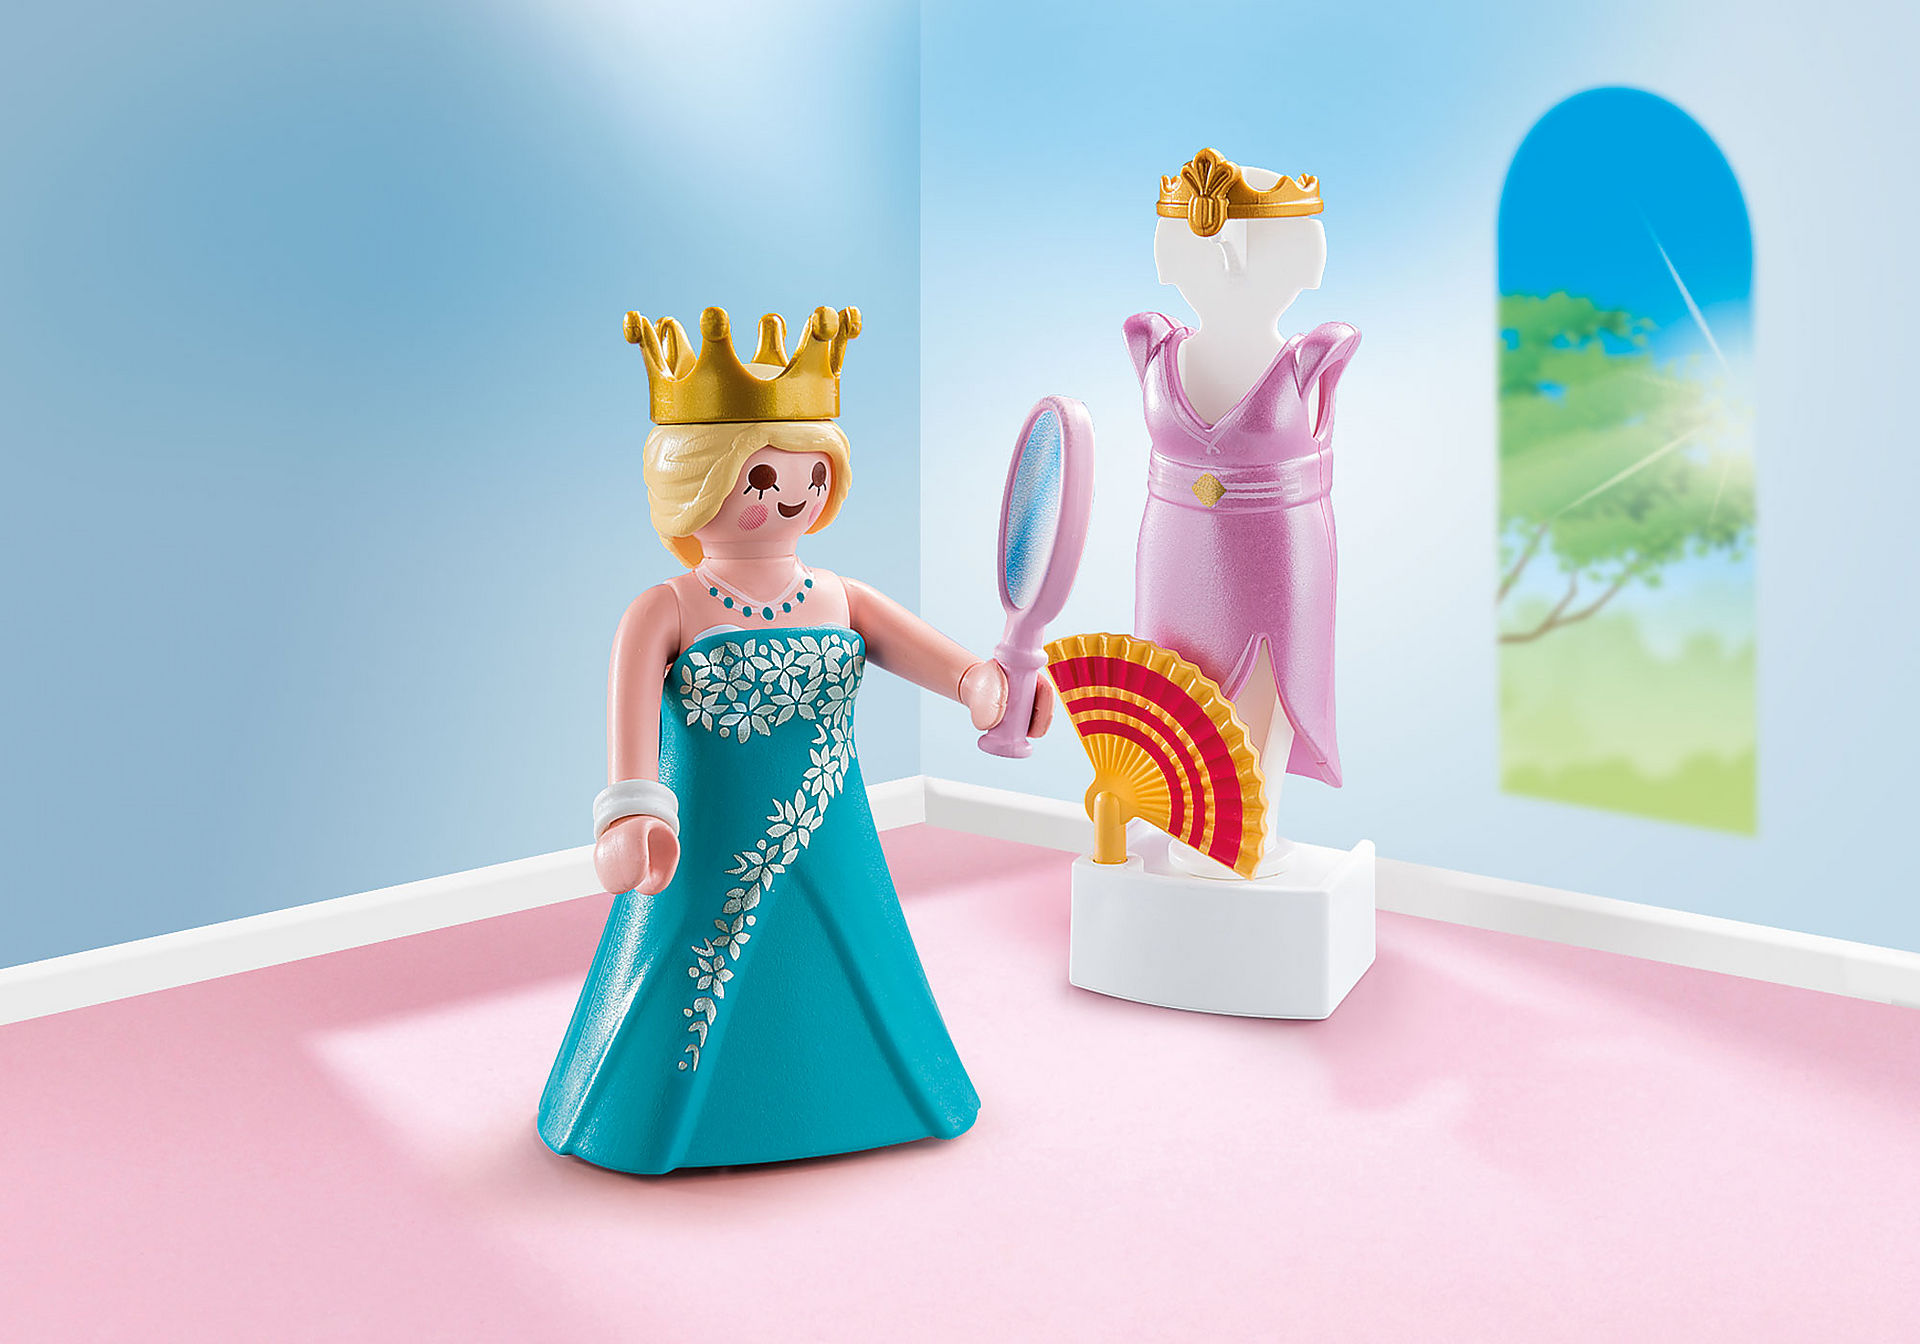 70153 Princess with Mannequin zoom image1